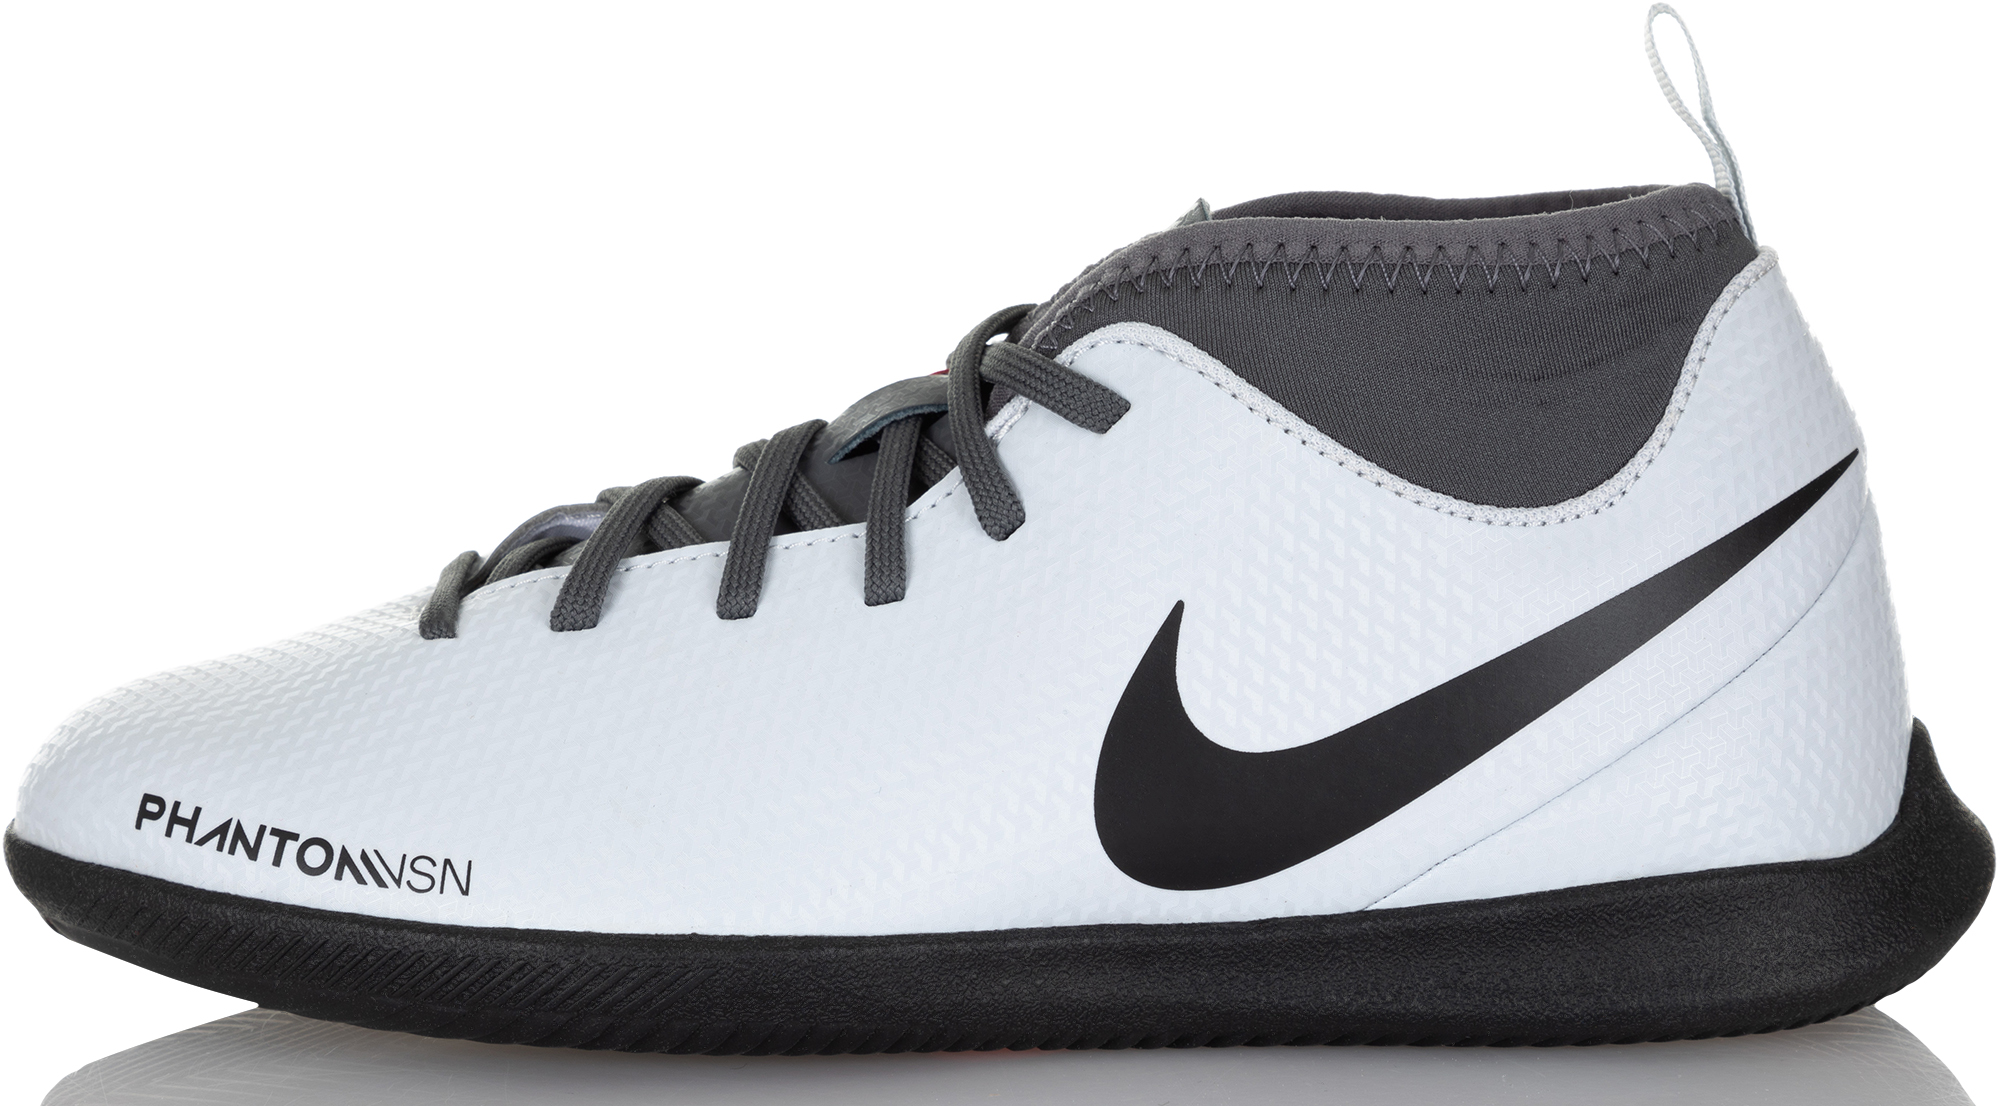 Nike Бутсы для мальчиков Nike Phantom Vision Club DF IC, размер 35,5 цена